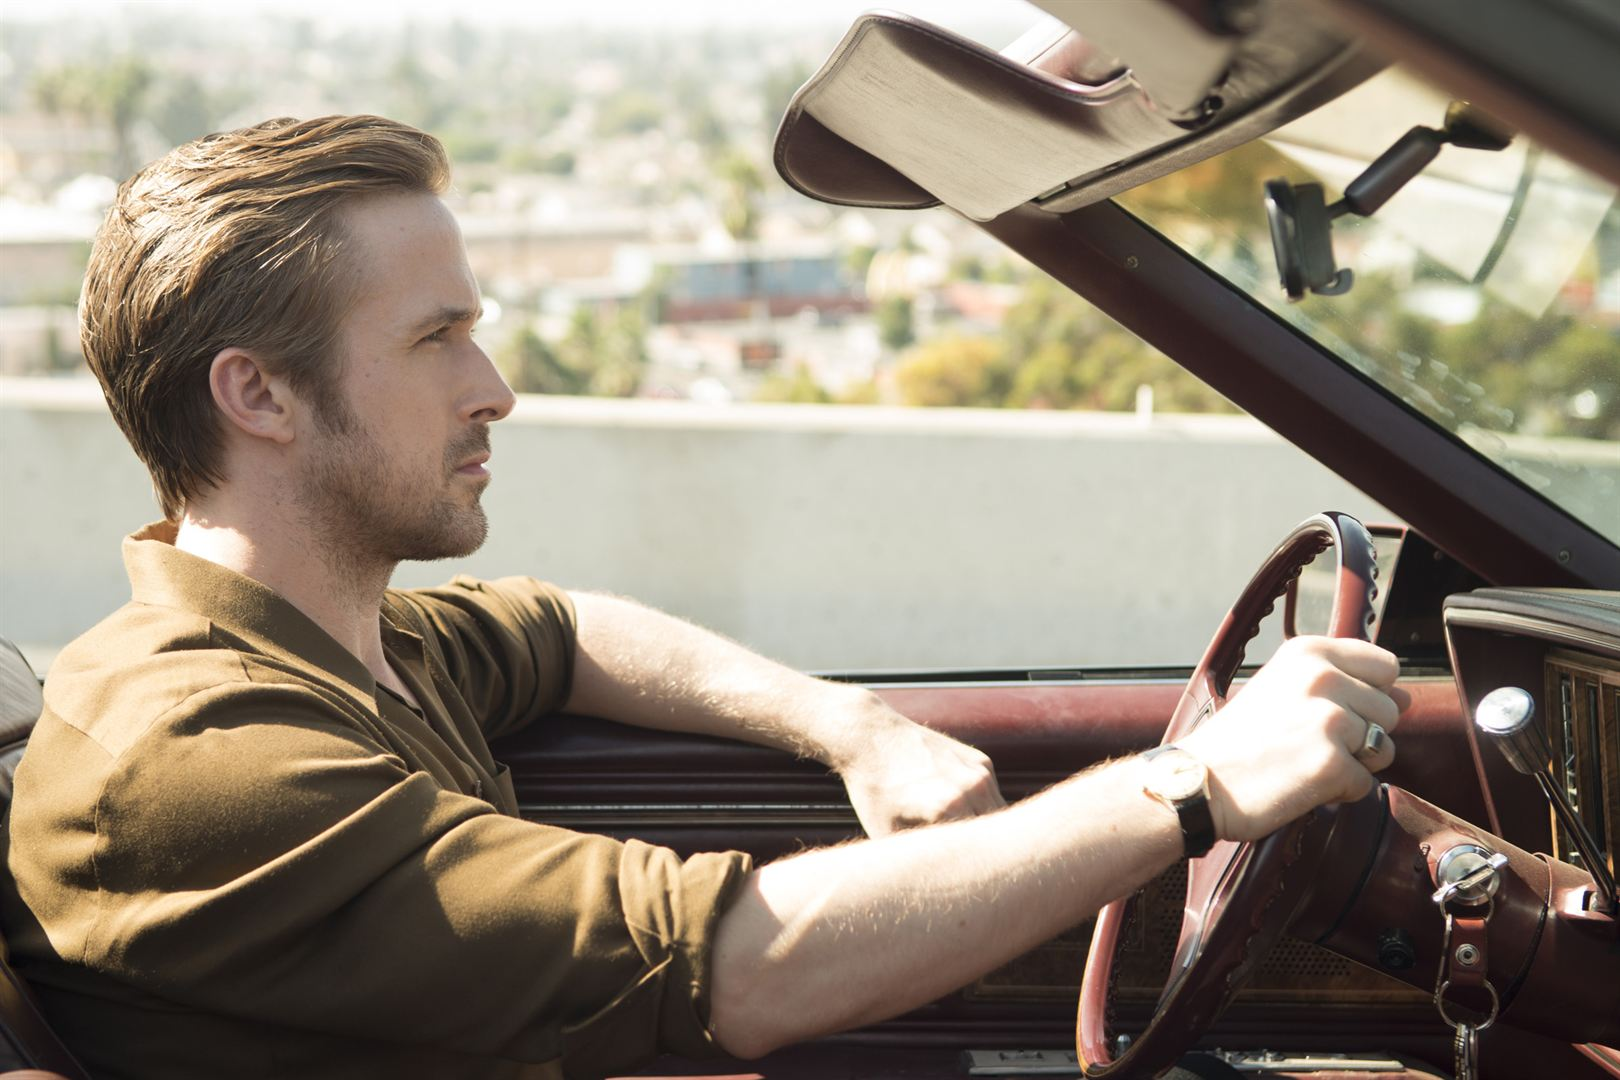 La la land - Ryan Gosling - Blog culture, cinéma